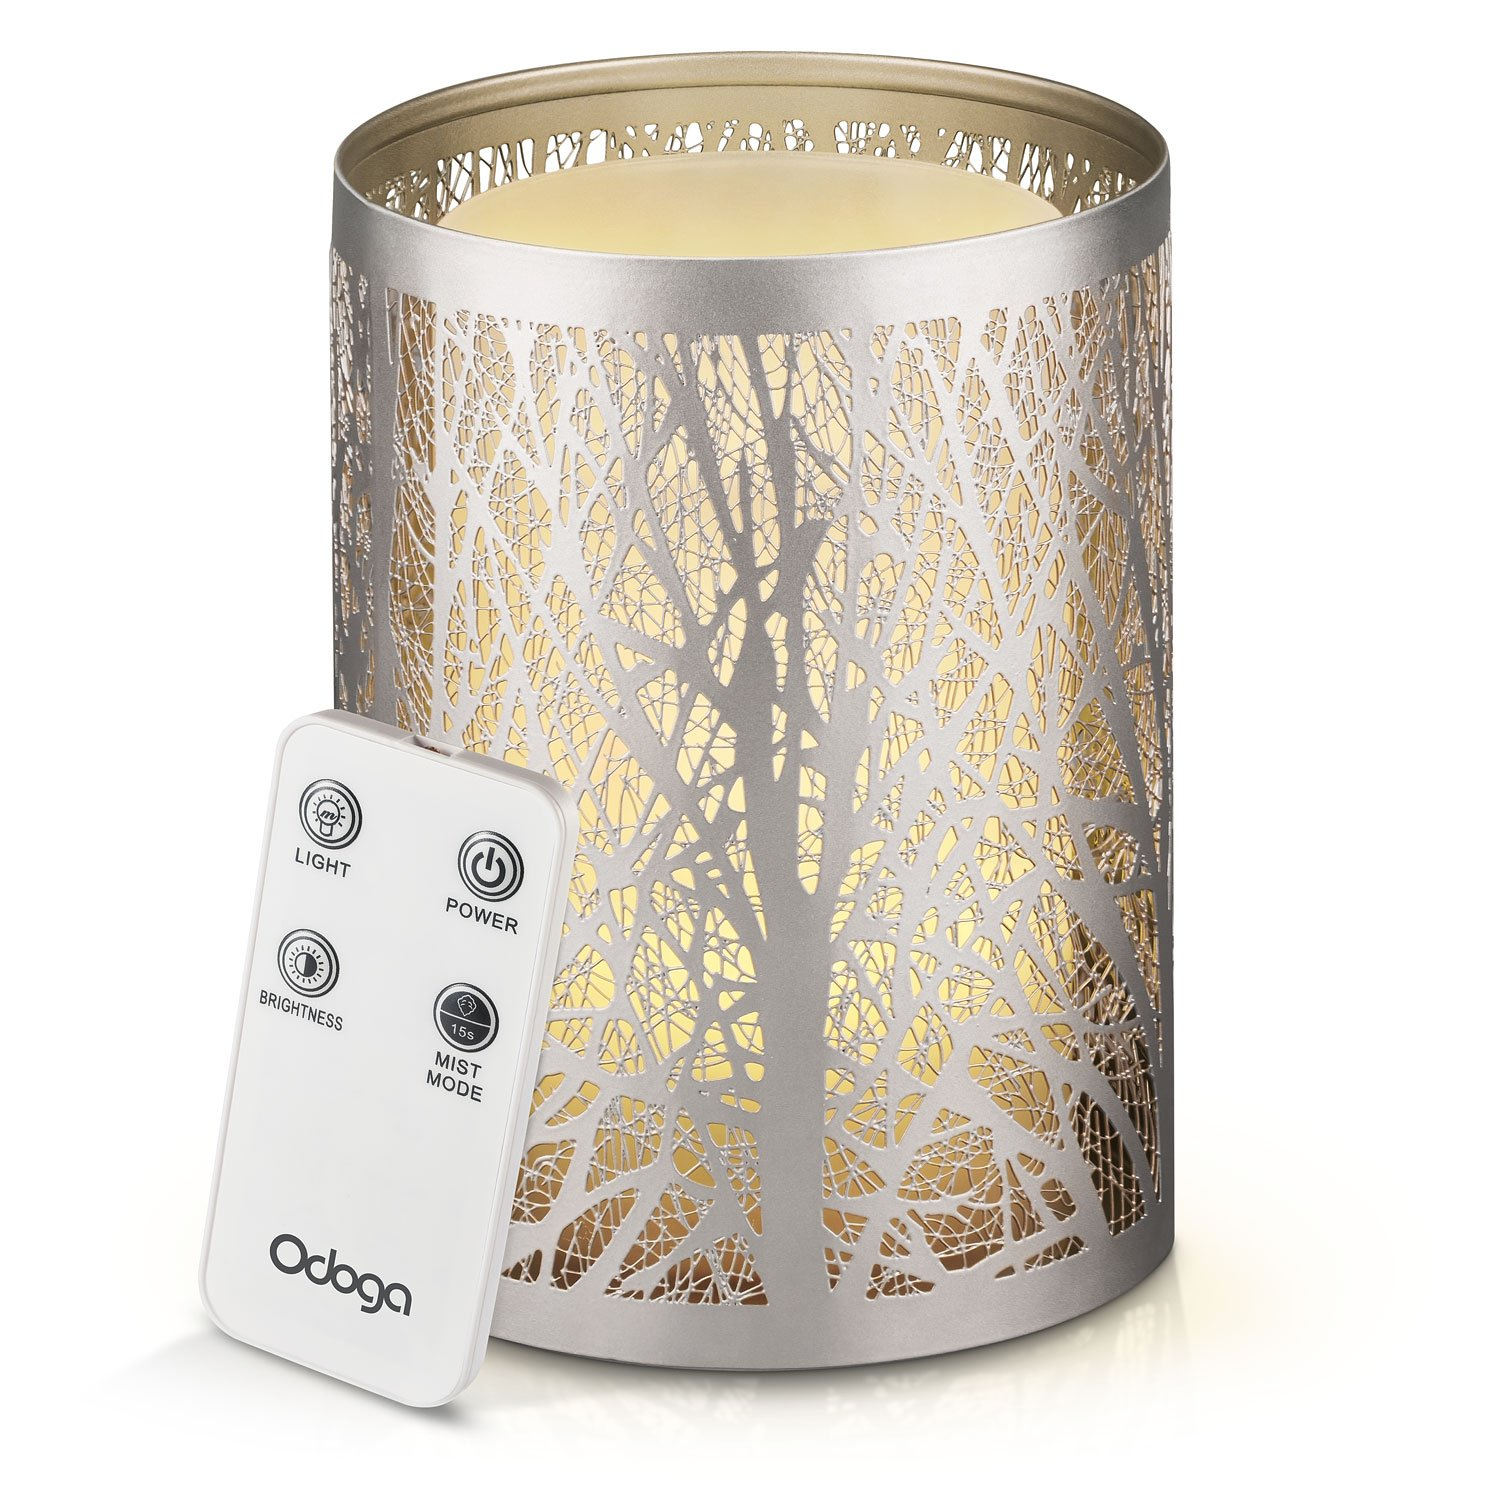 Odoga Aromatherapy Essential Oil Diffuser, 100 ml Ultrasonic Whisper Quiet Cool Mist Humidifier with Warm White Color Candle Light Effect, Low Water Auto Shut-Off & Remote Control